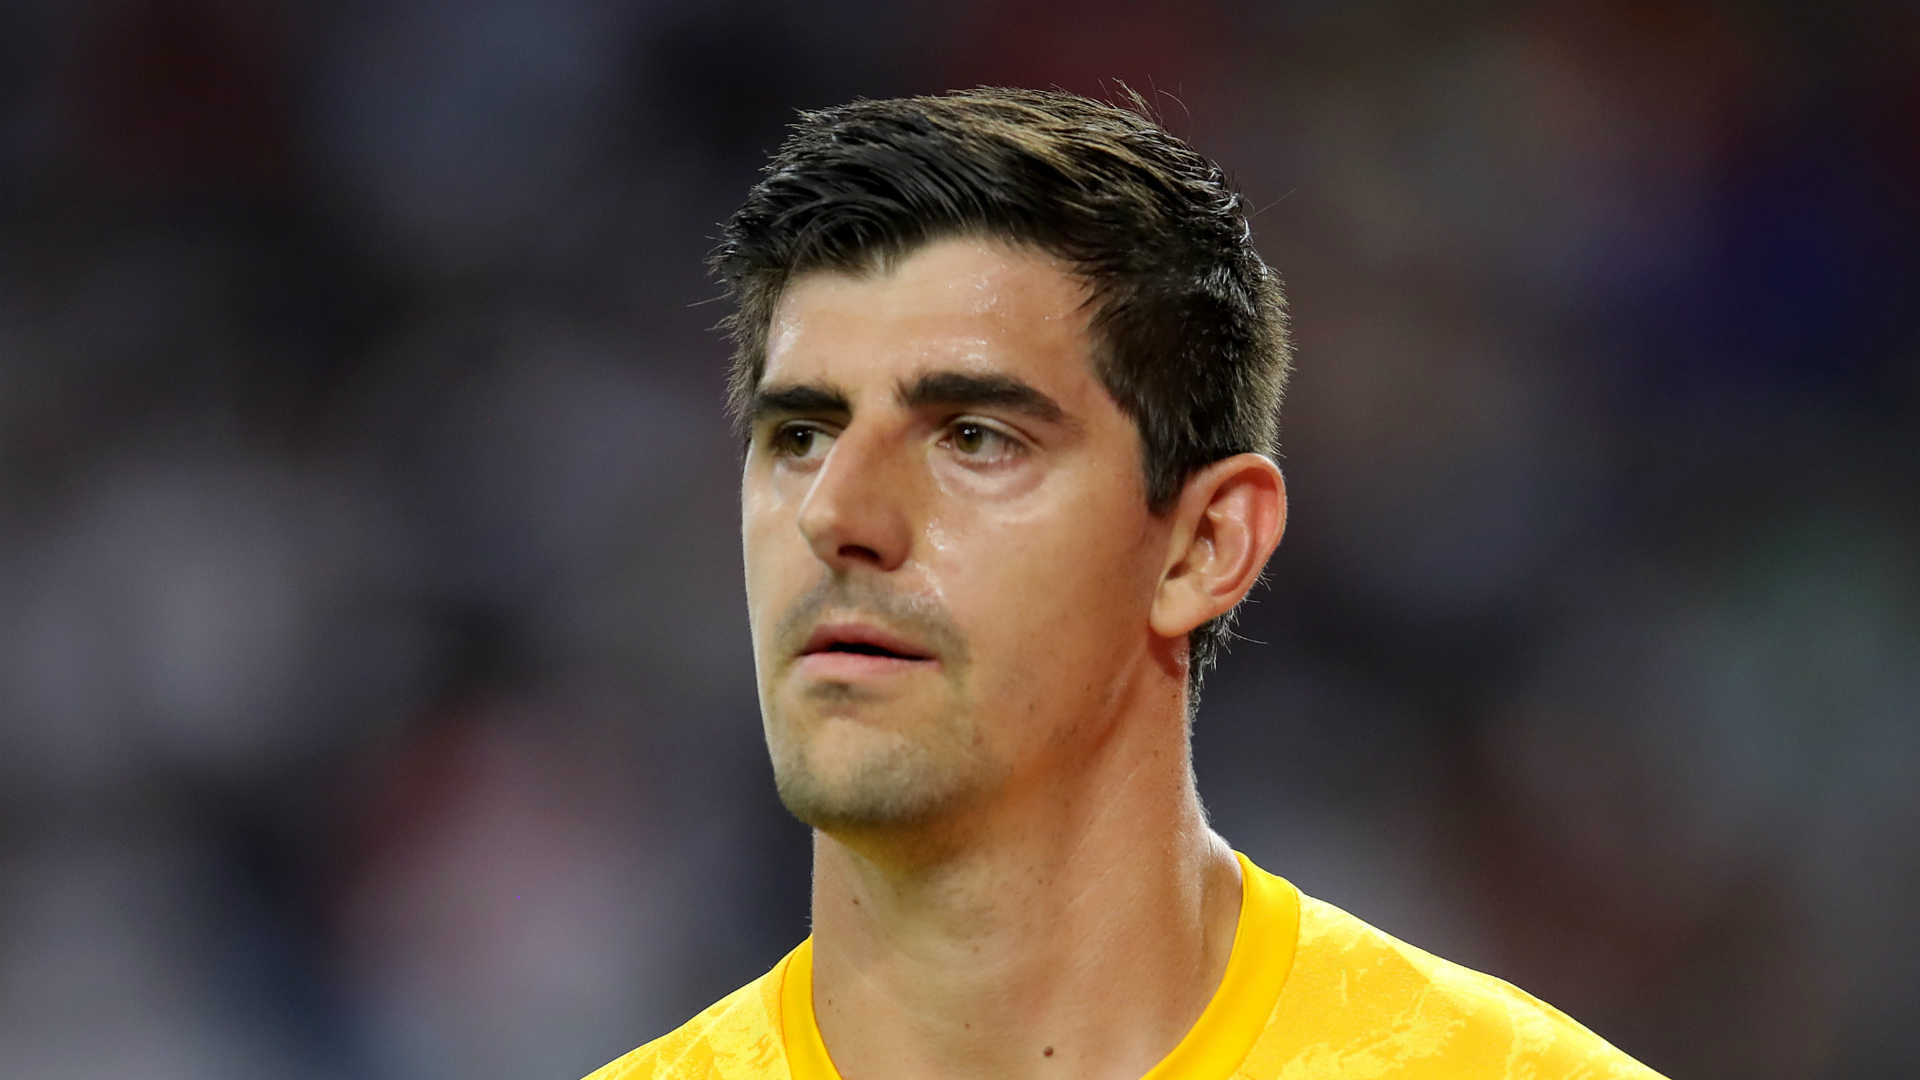 'I am one of the best goalkeepers in the world' - Courtois fires back at critics after testing period at Real Madrid